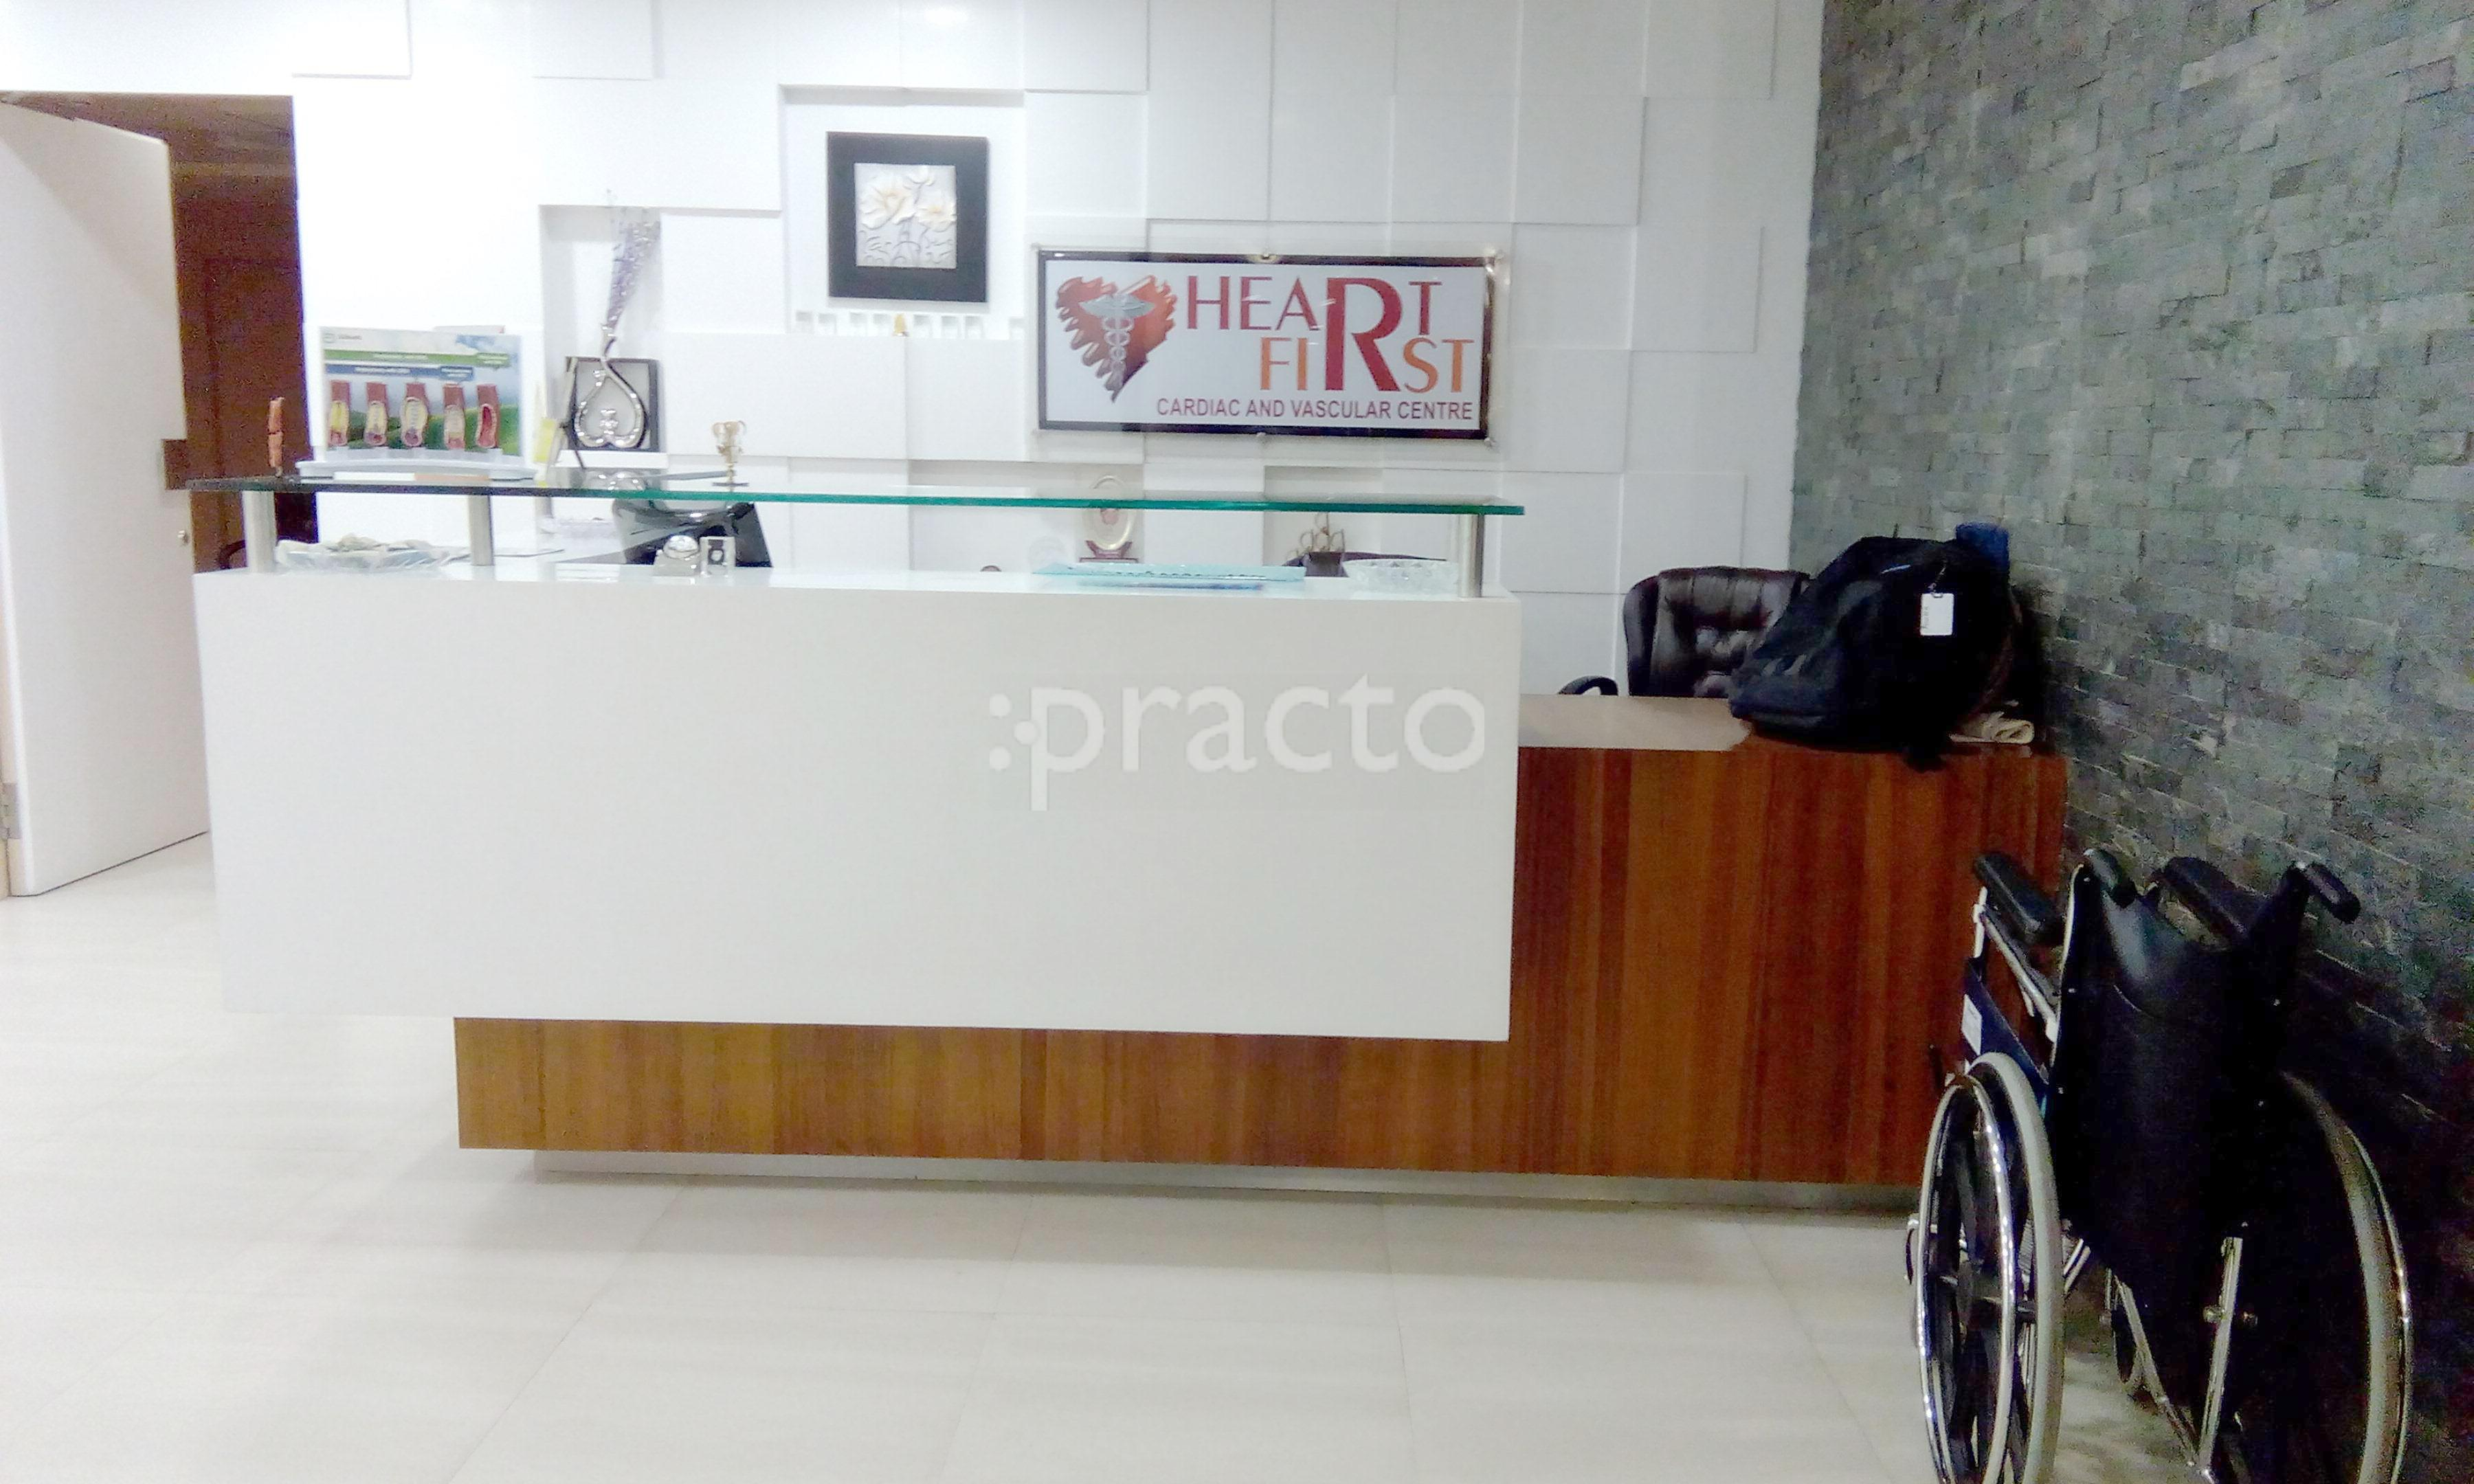 Heart First Hospital, Cardiology Hospital in Athwalines, Surat